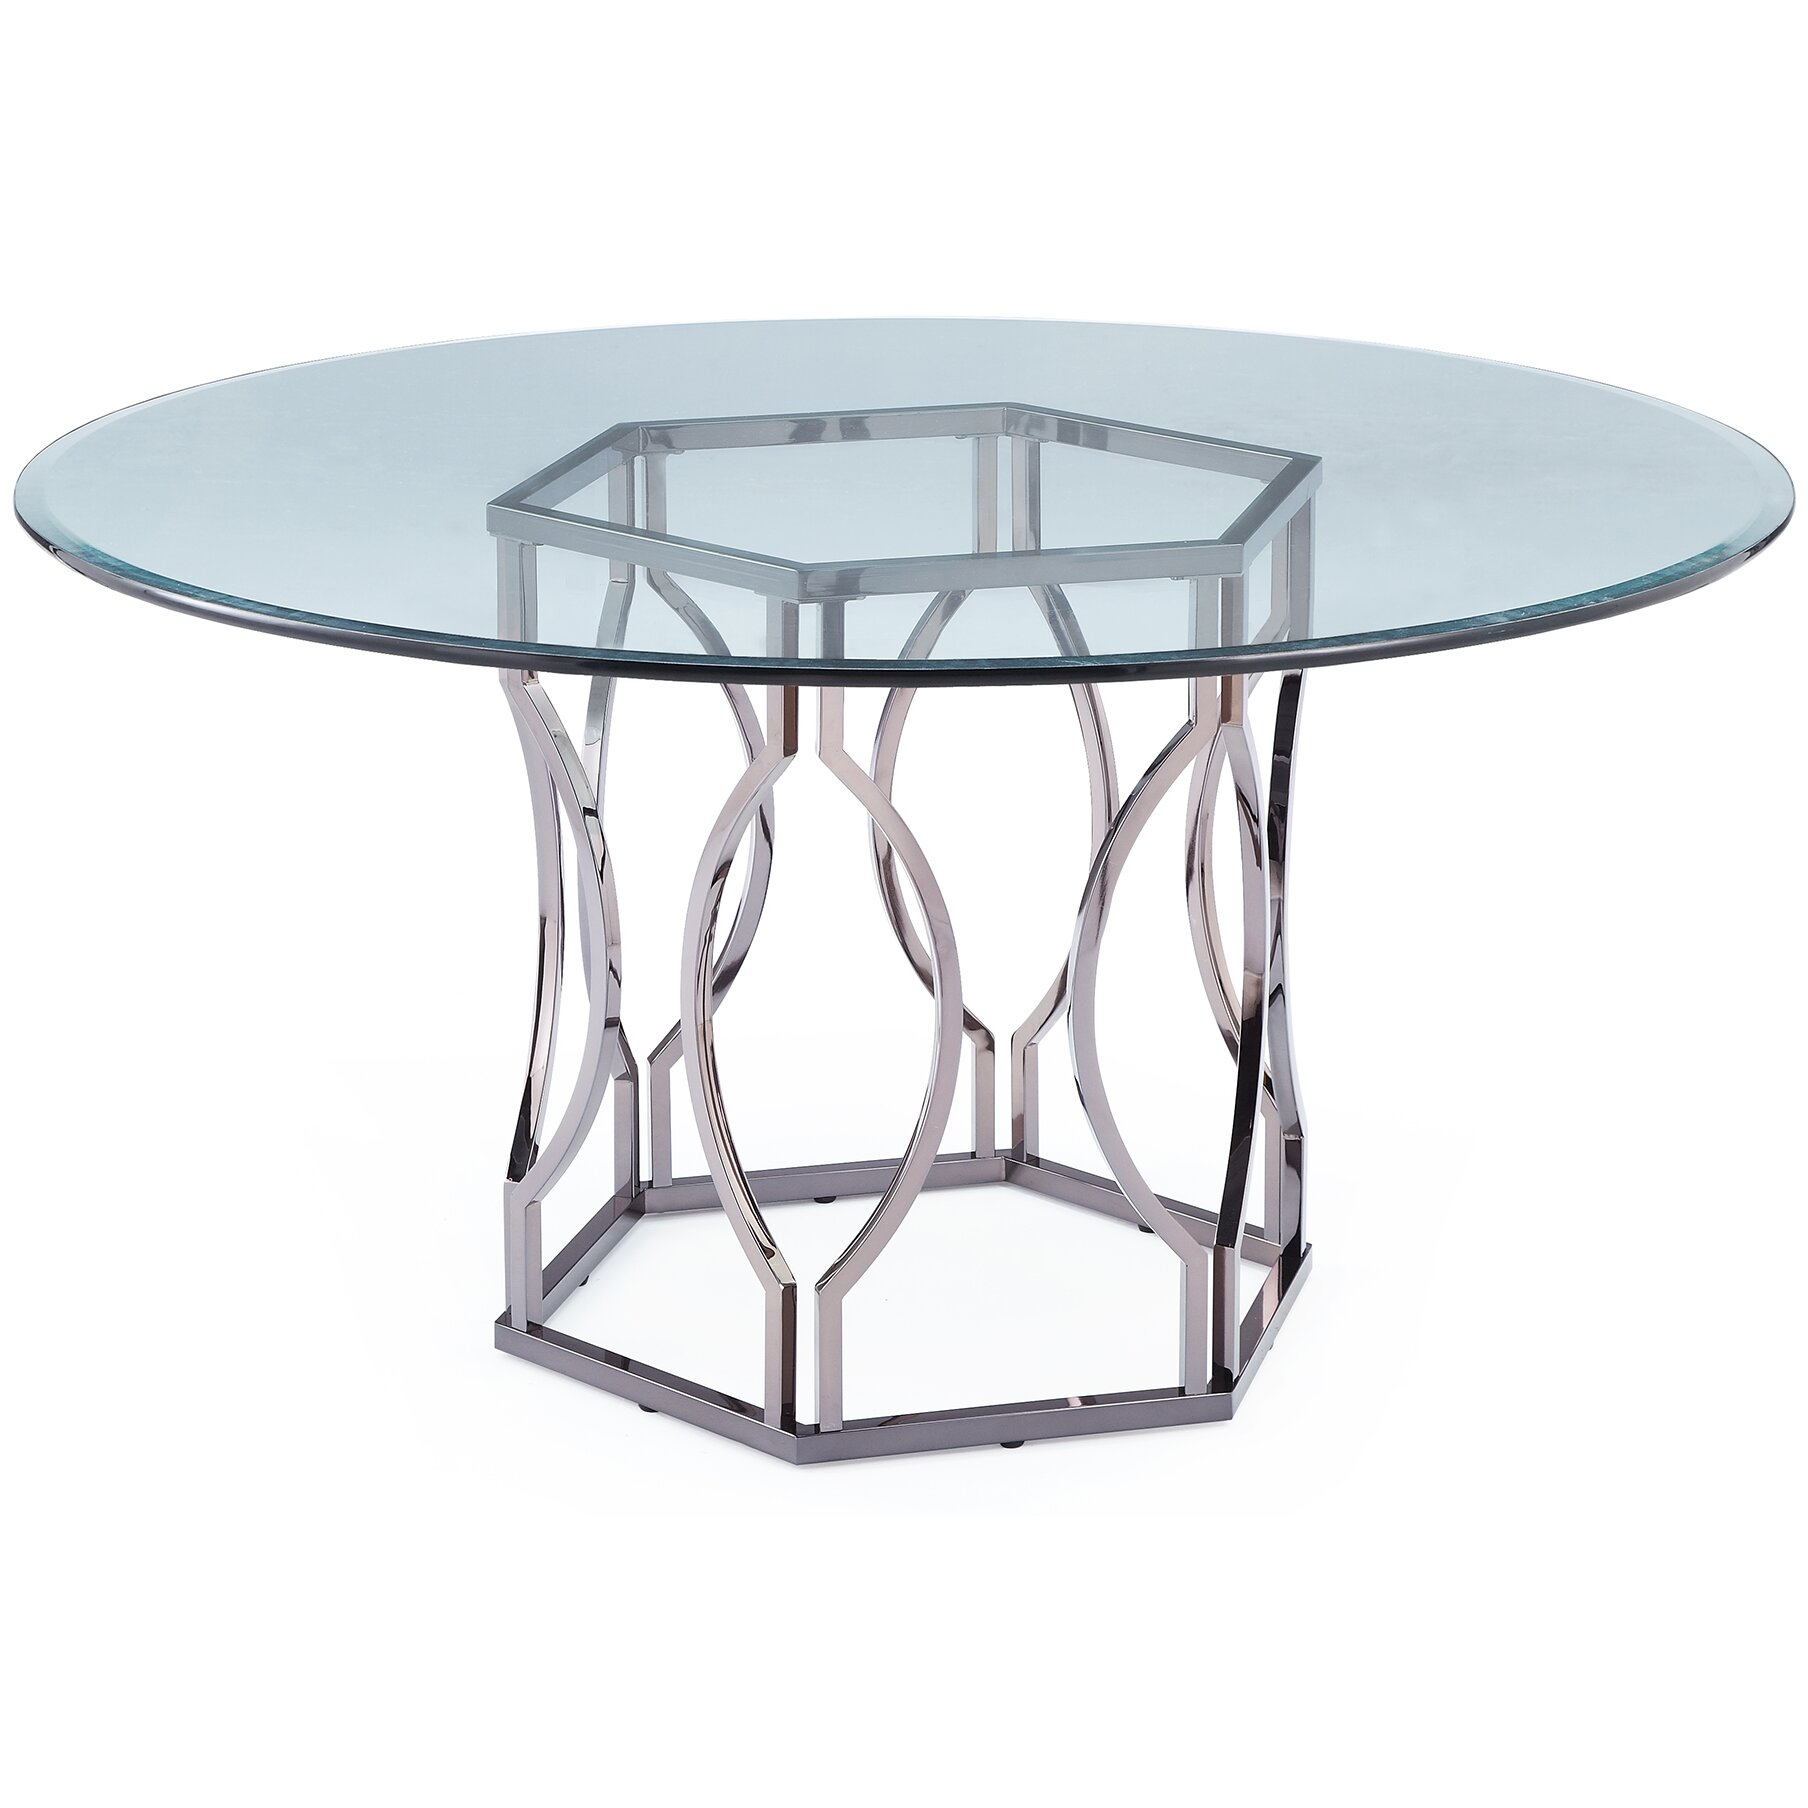 mercer41 viggo round glass dining table reviews wayfair. Black Bedroom Furniture Sets. Home Design Ideas